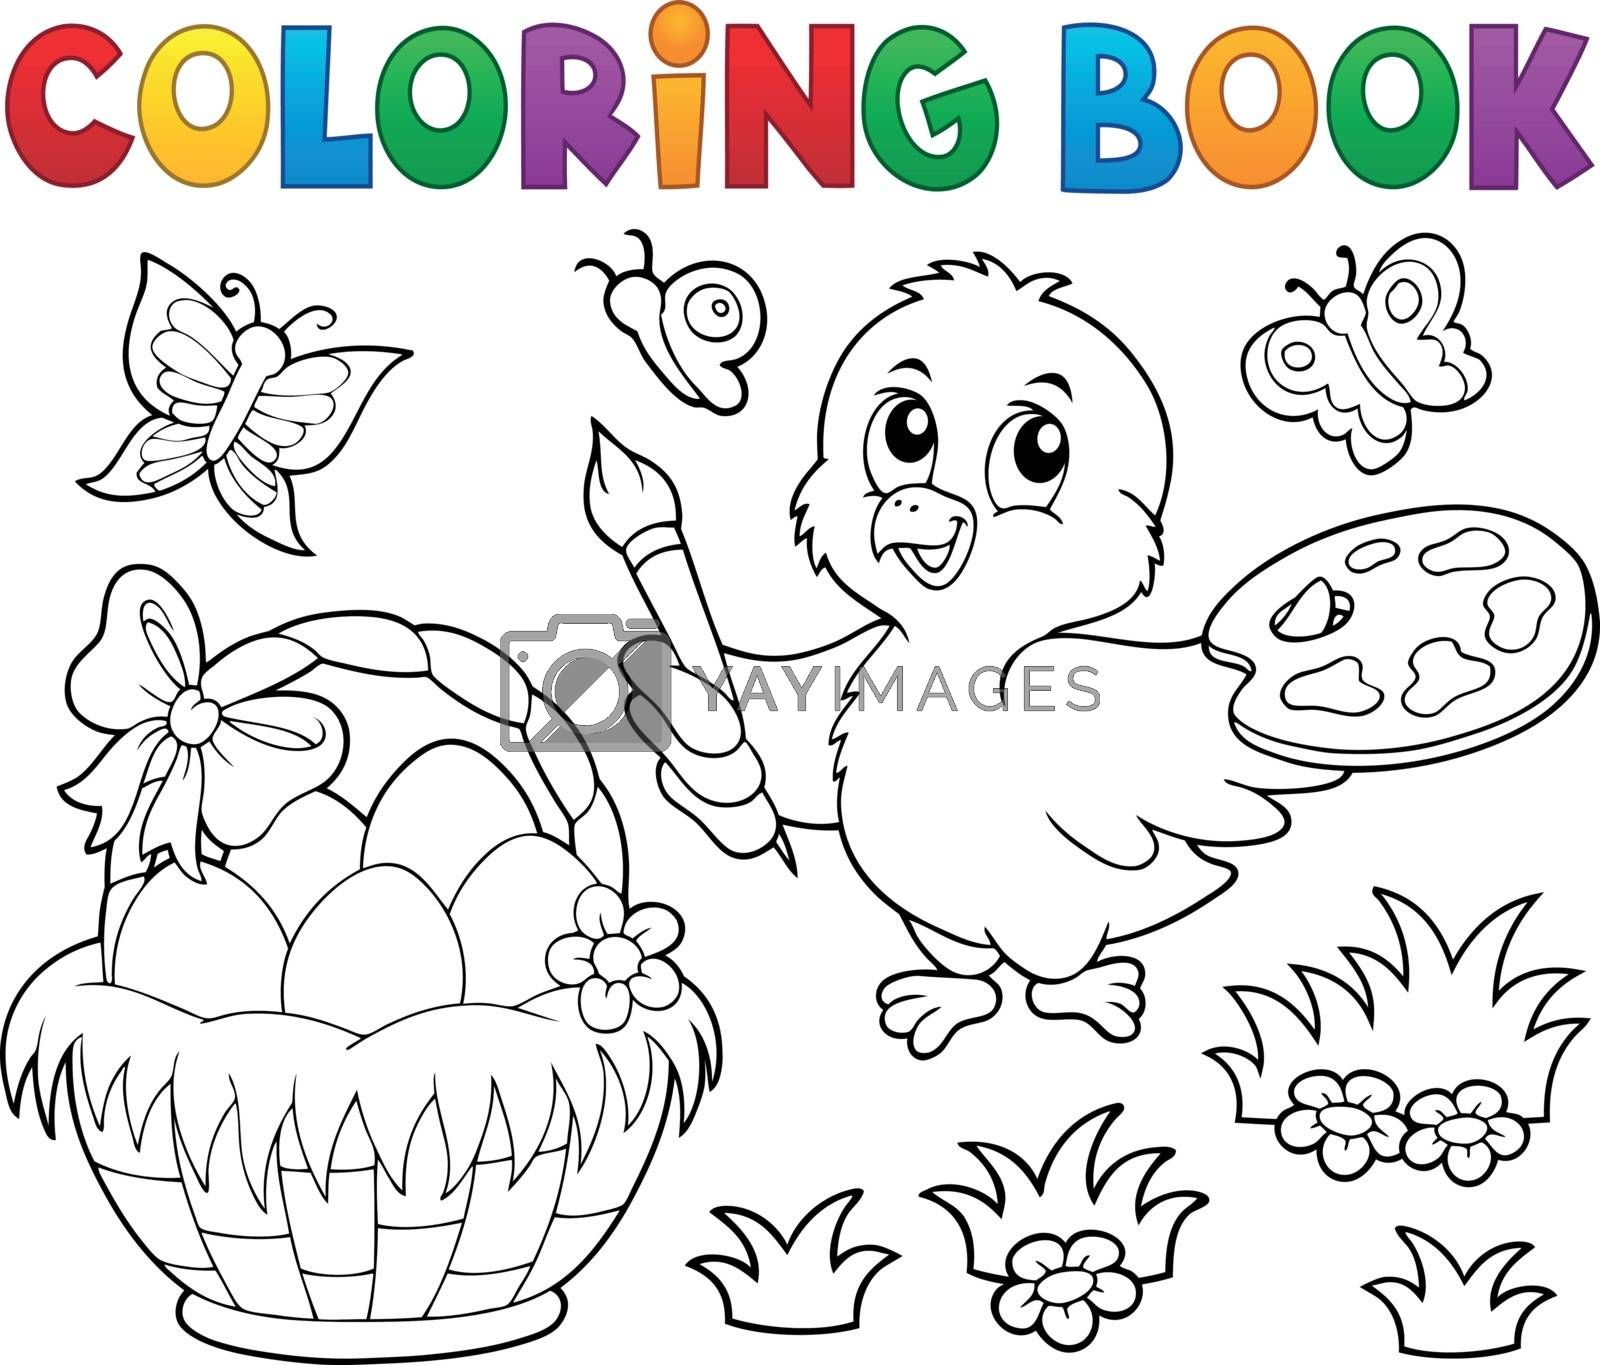 Coloring book Easter theme with chicken - eps10 vector illustration.